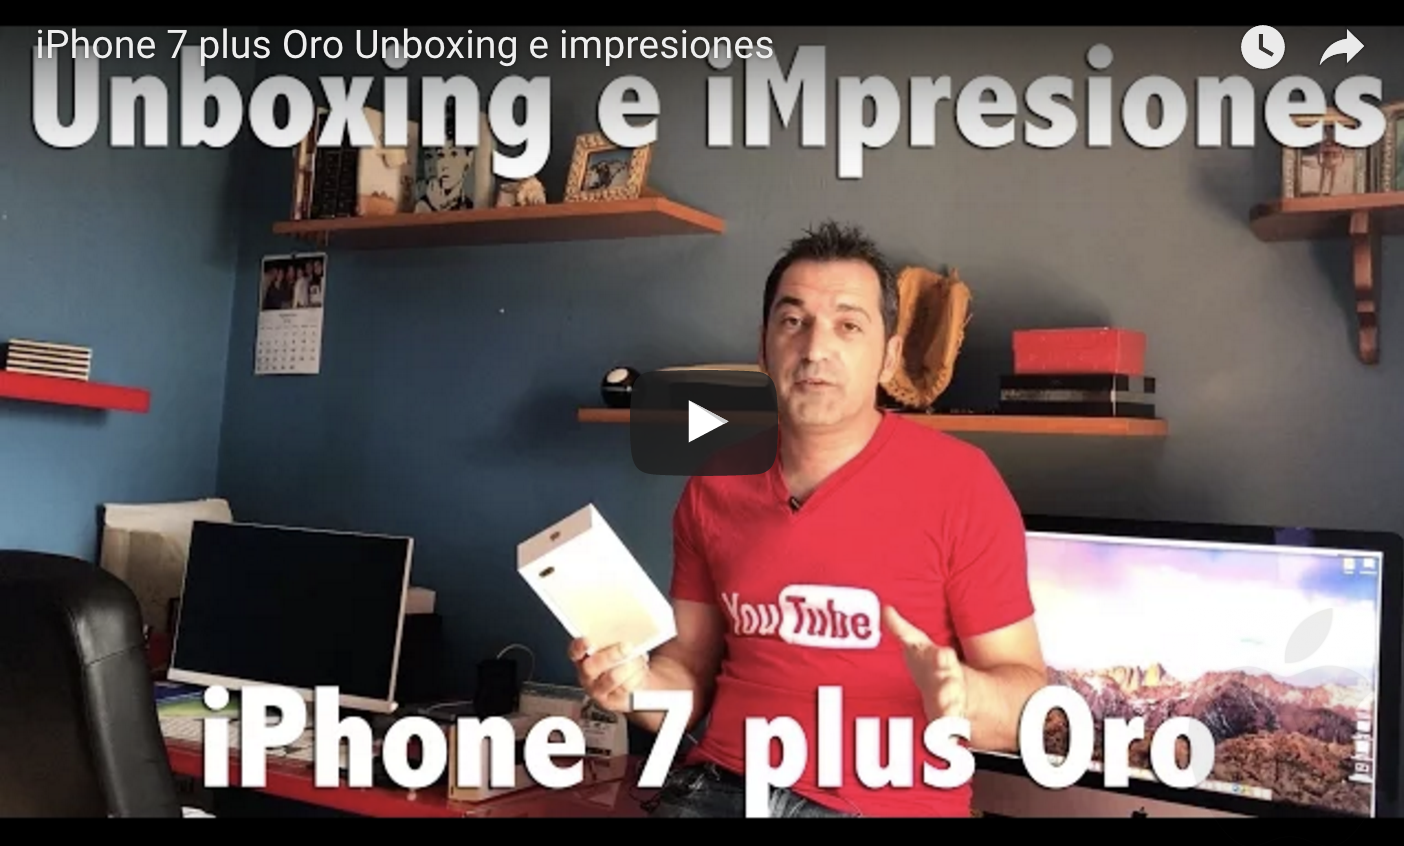 AppleManiacos TV: iPhone 7 plus Oro Unboxing e impresiones